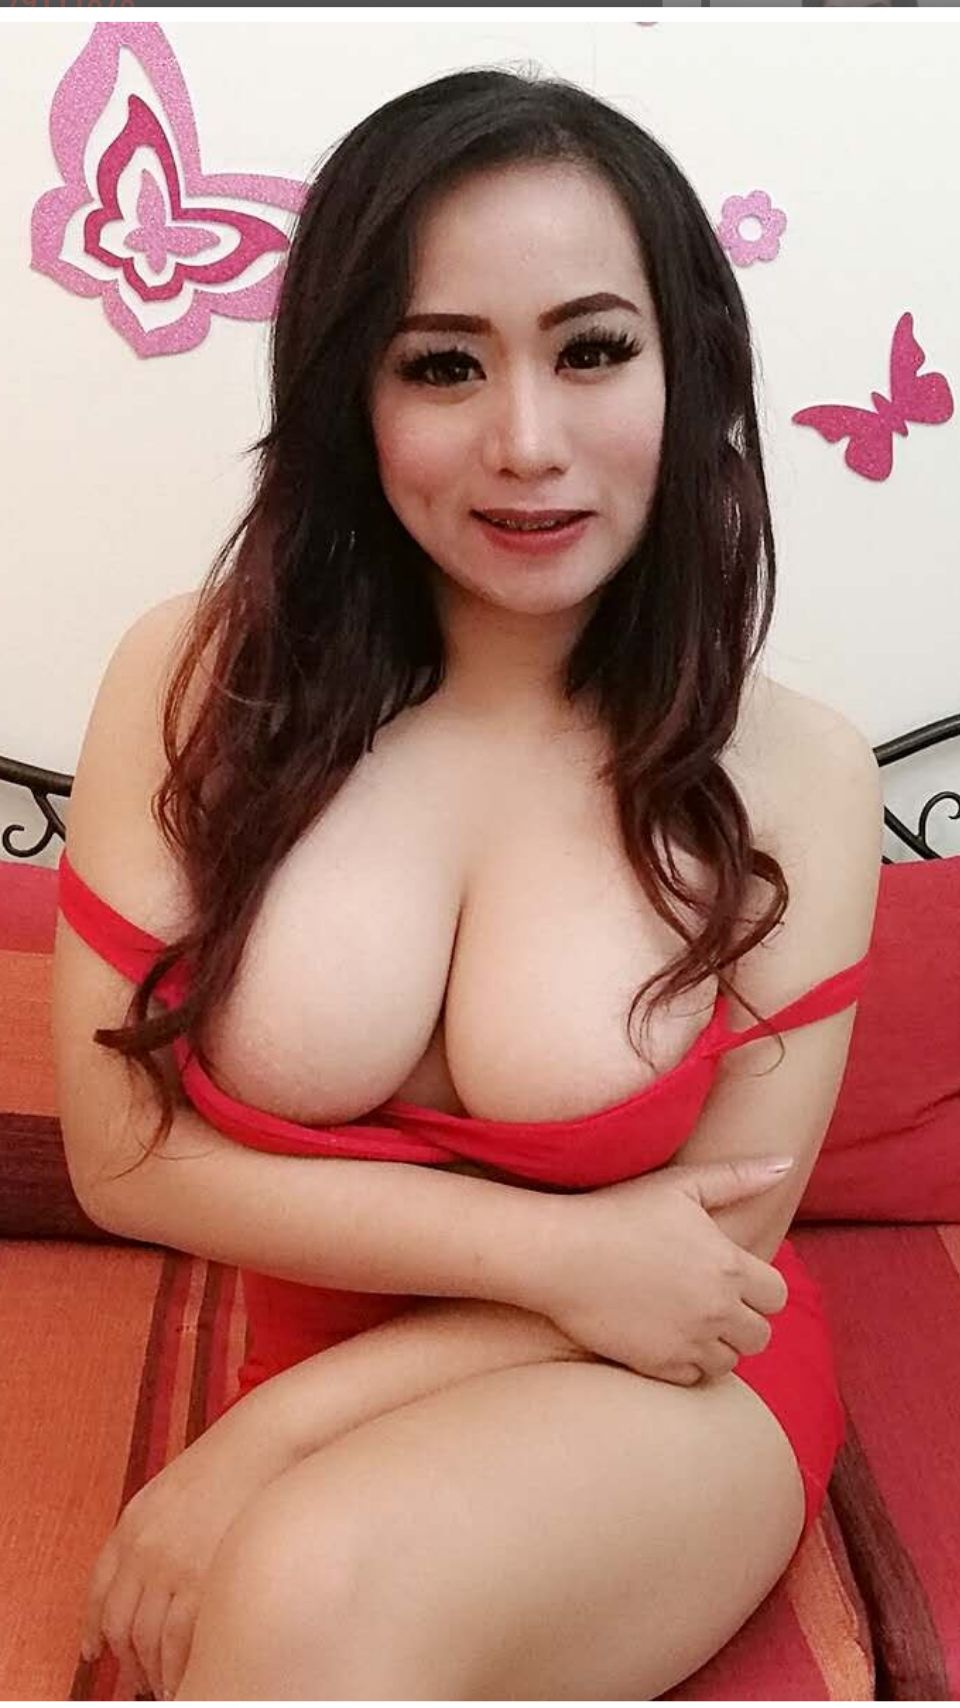 massage og escort fyn thai massage body 2 body